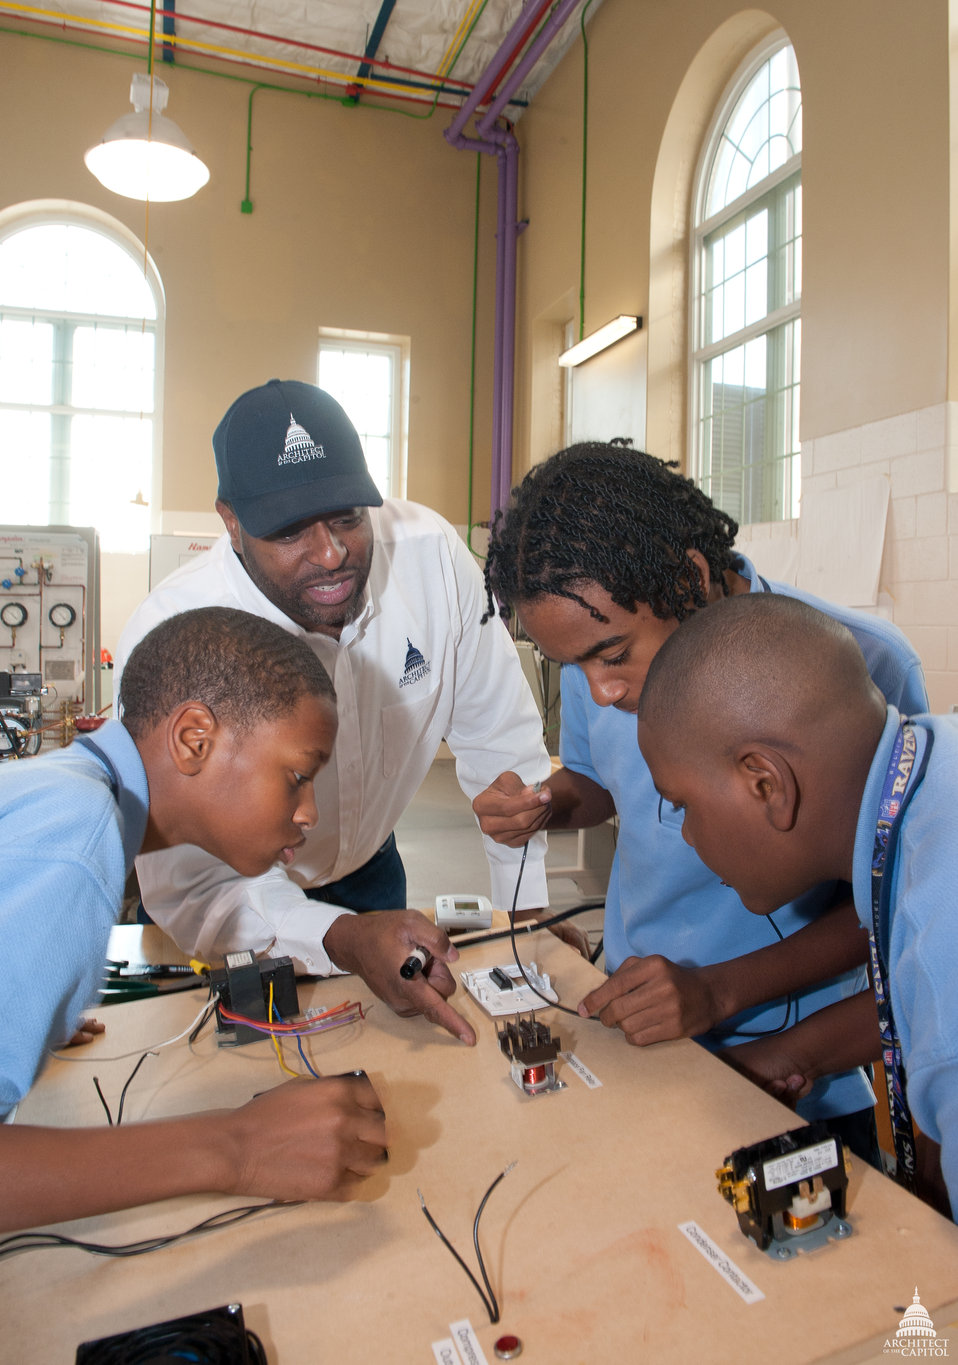 AOC Employee teaches high school students about electrical circuits